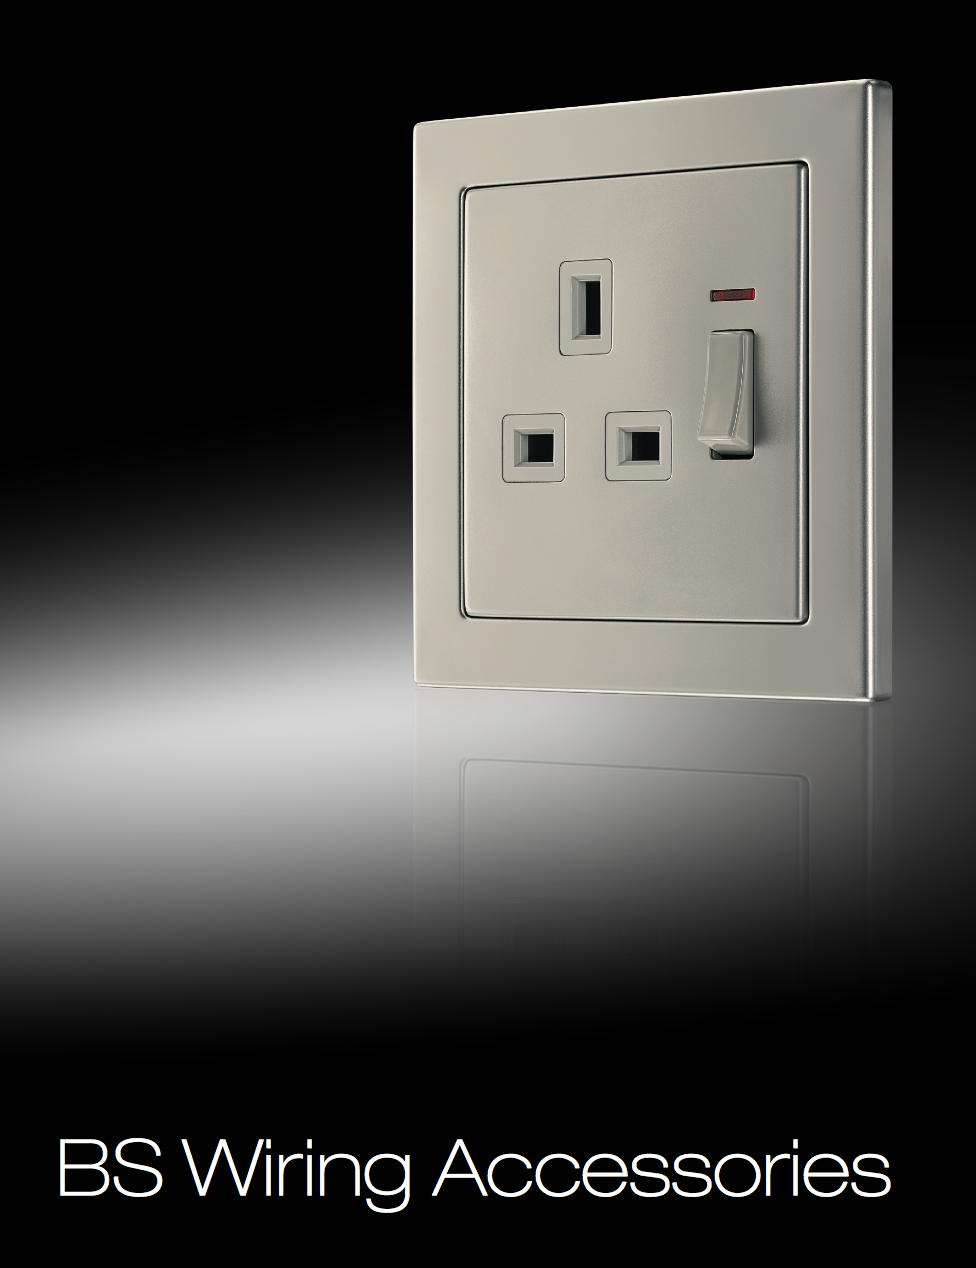 touch control design switches home control system home automation luxury home for interiors and architectures projects smart home homeautomation [ 976 x 1268 Pixel ]